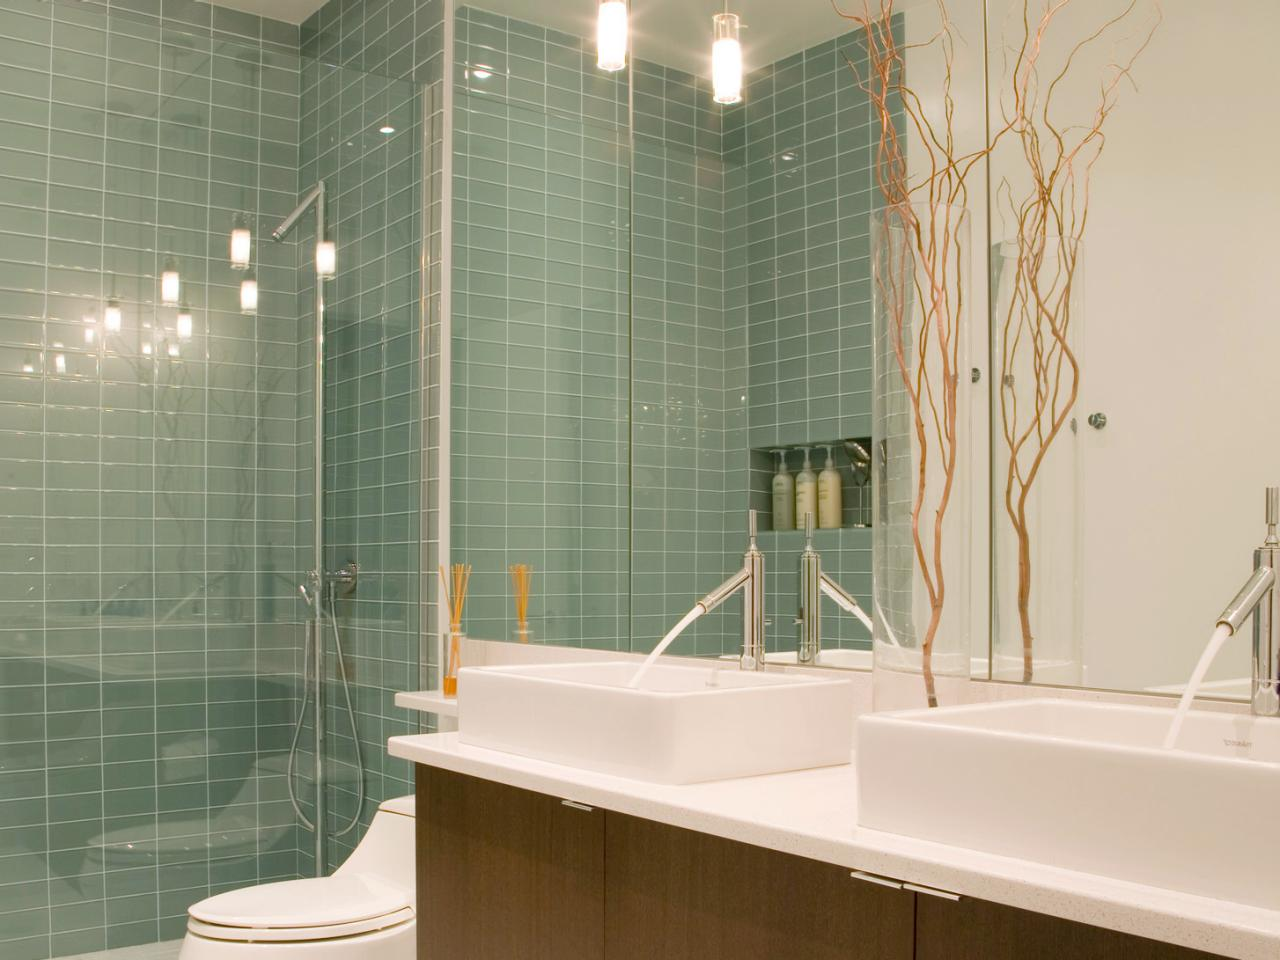 Reaching The Greatest Basement Bathroom Remodel Concepts Contemporary Bath with Glass Tile Walls